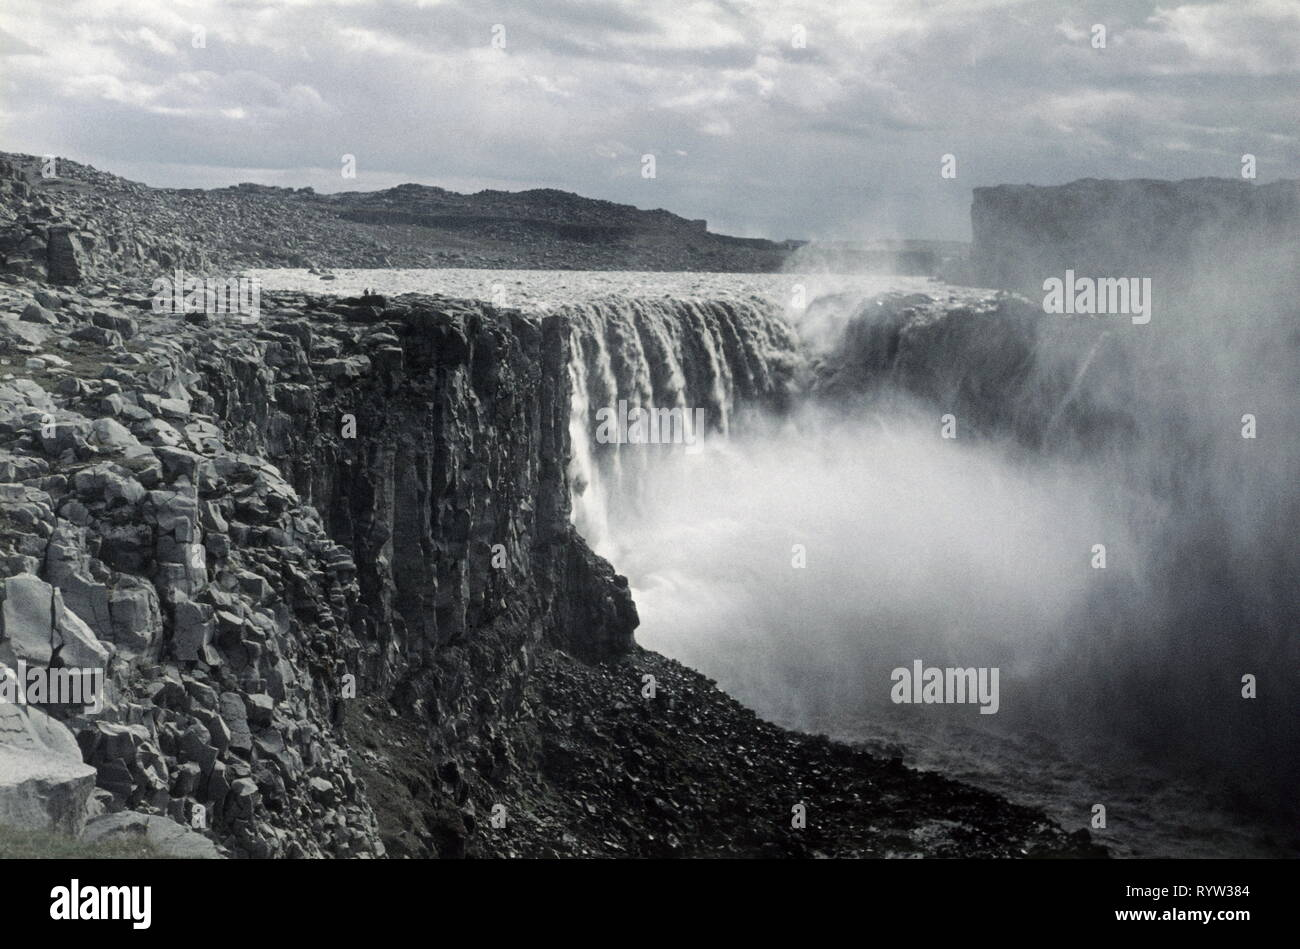 Geografia / viaggi, Islanda, cascata di Dettifoss, 1957, Additional-Rights-Clearance-Info-Not-Available Immagini Stock